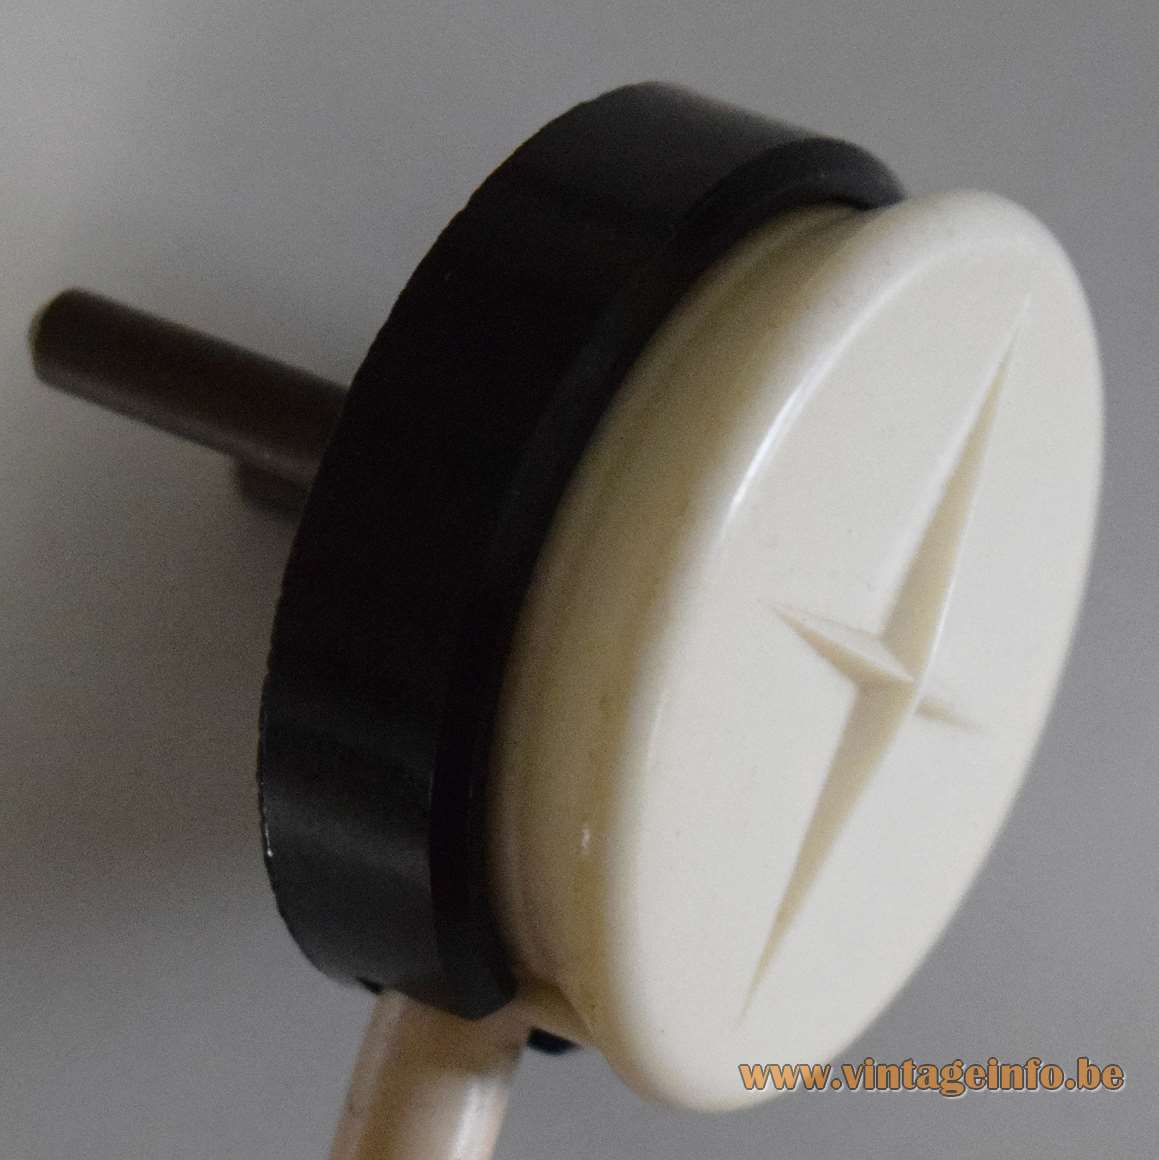 1950s Dimmable Table Lamp - VLM Components 1960s Plug